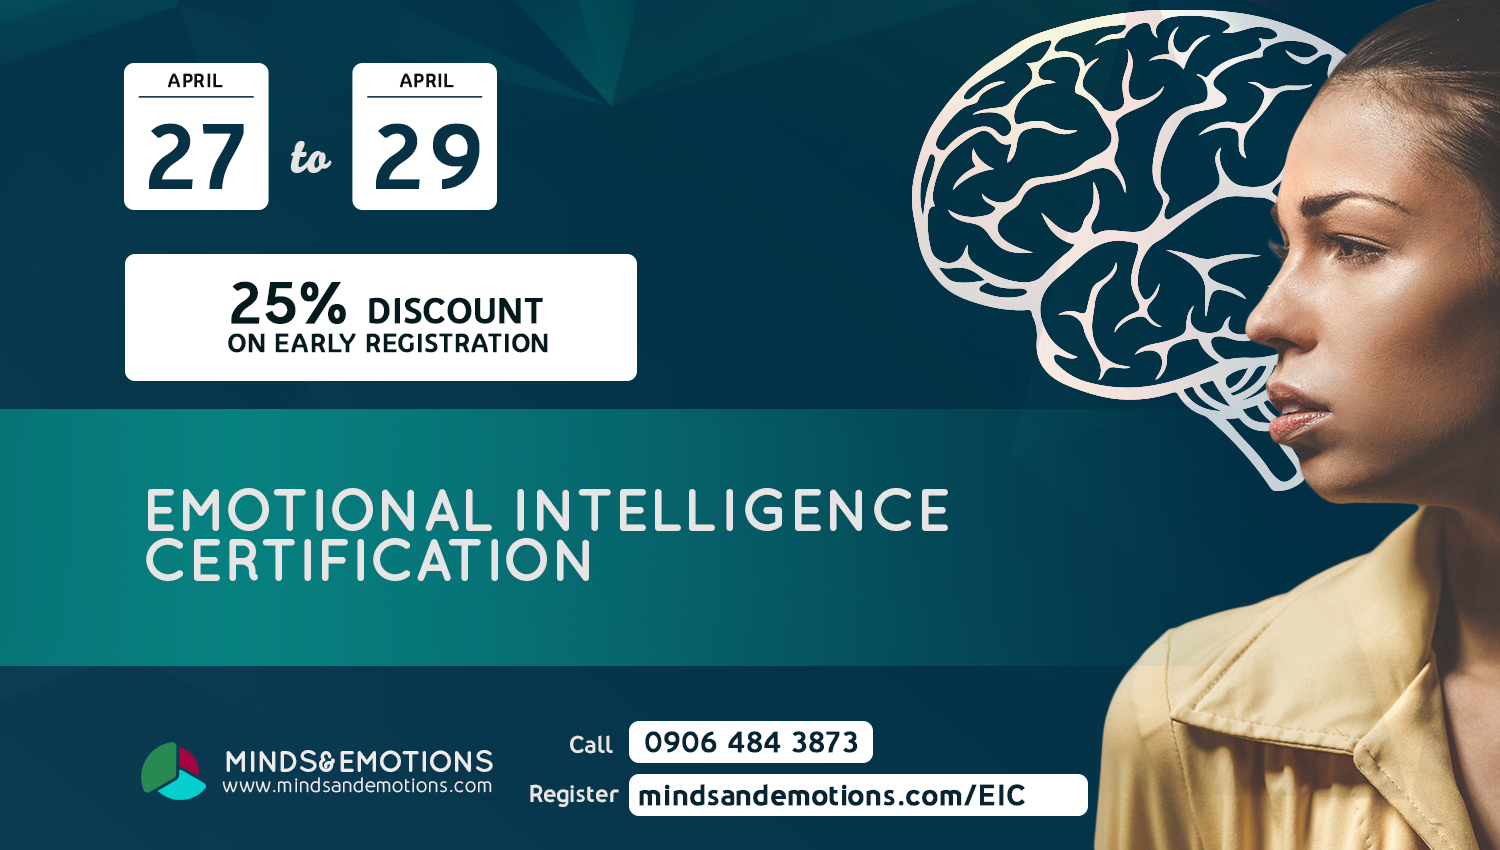 Emotional Intelligence Certification – Minds and Emotions